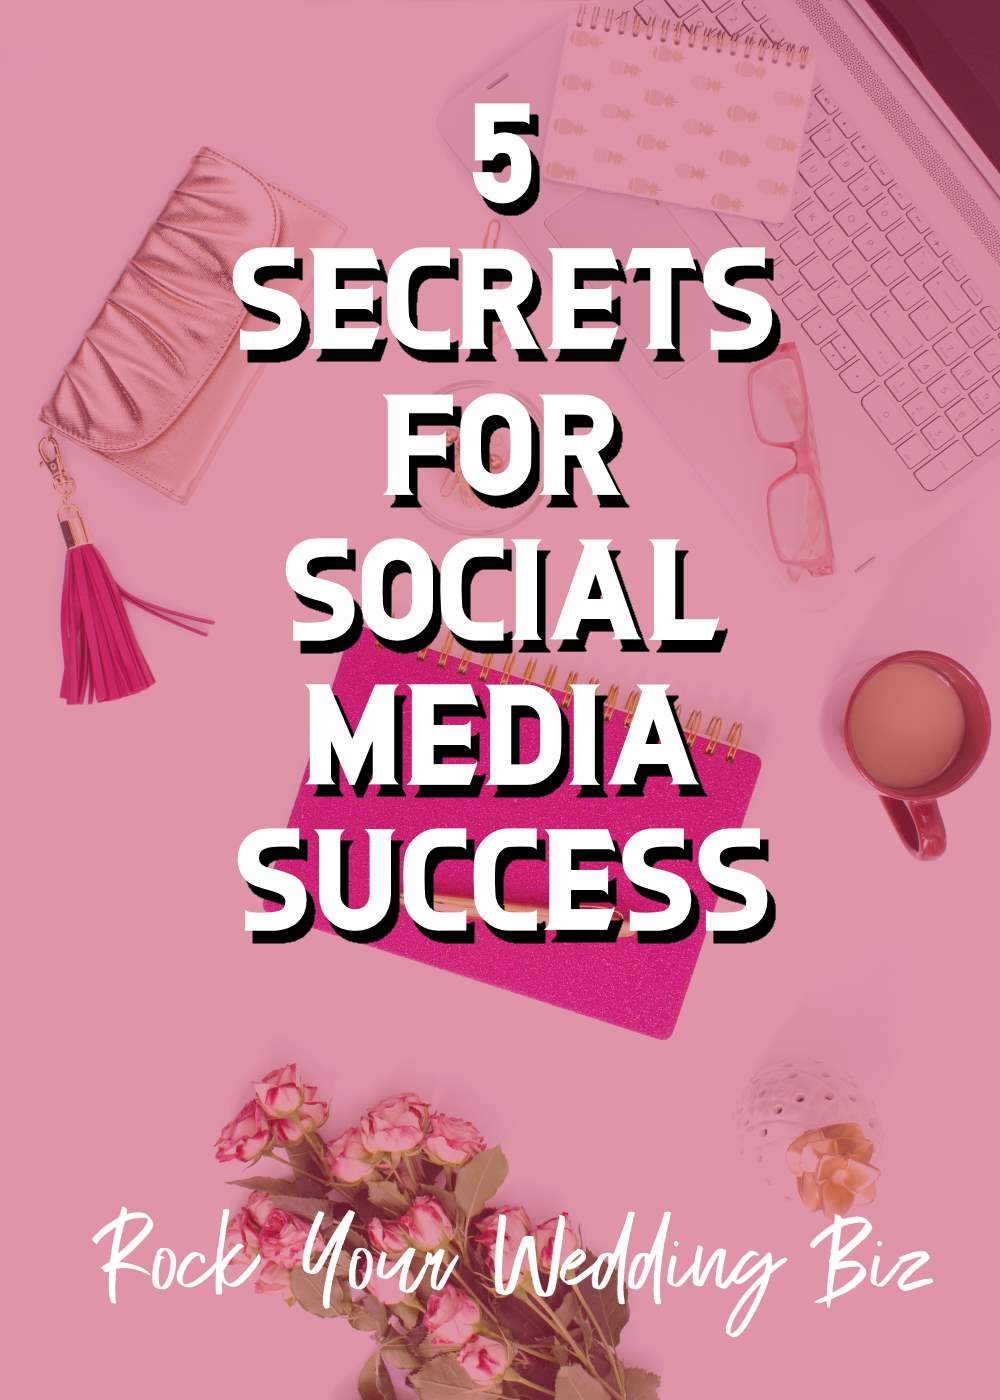 Episode 13 - 5 Secrets for Social Media Success